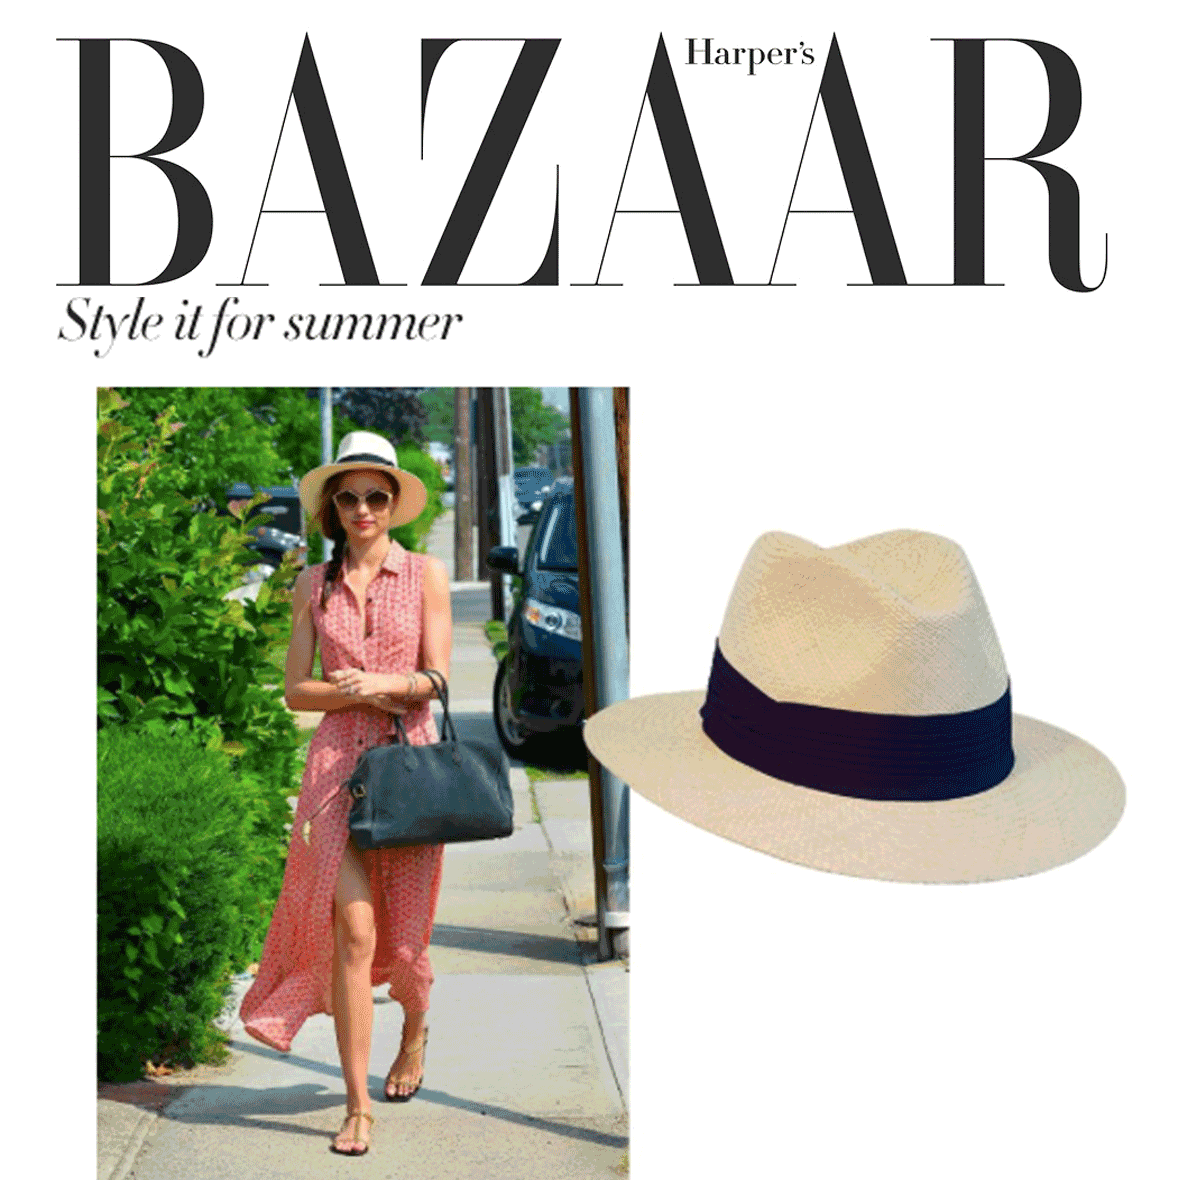 HOW TO WEAR A PANAMA HAT: HARPERS BAZAAR (MAY 2016)